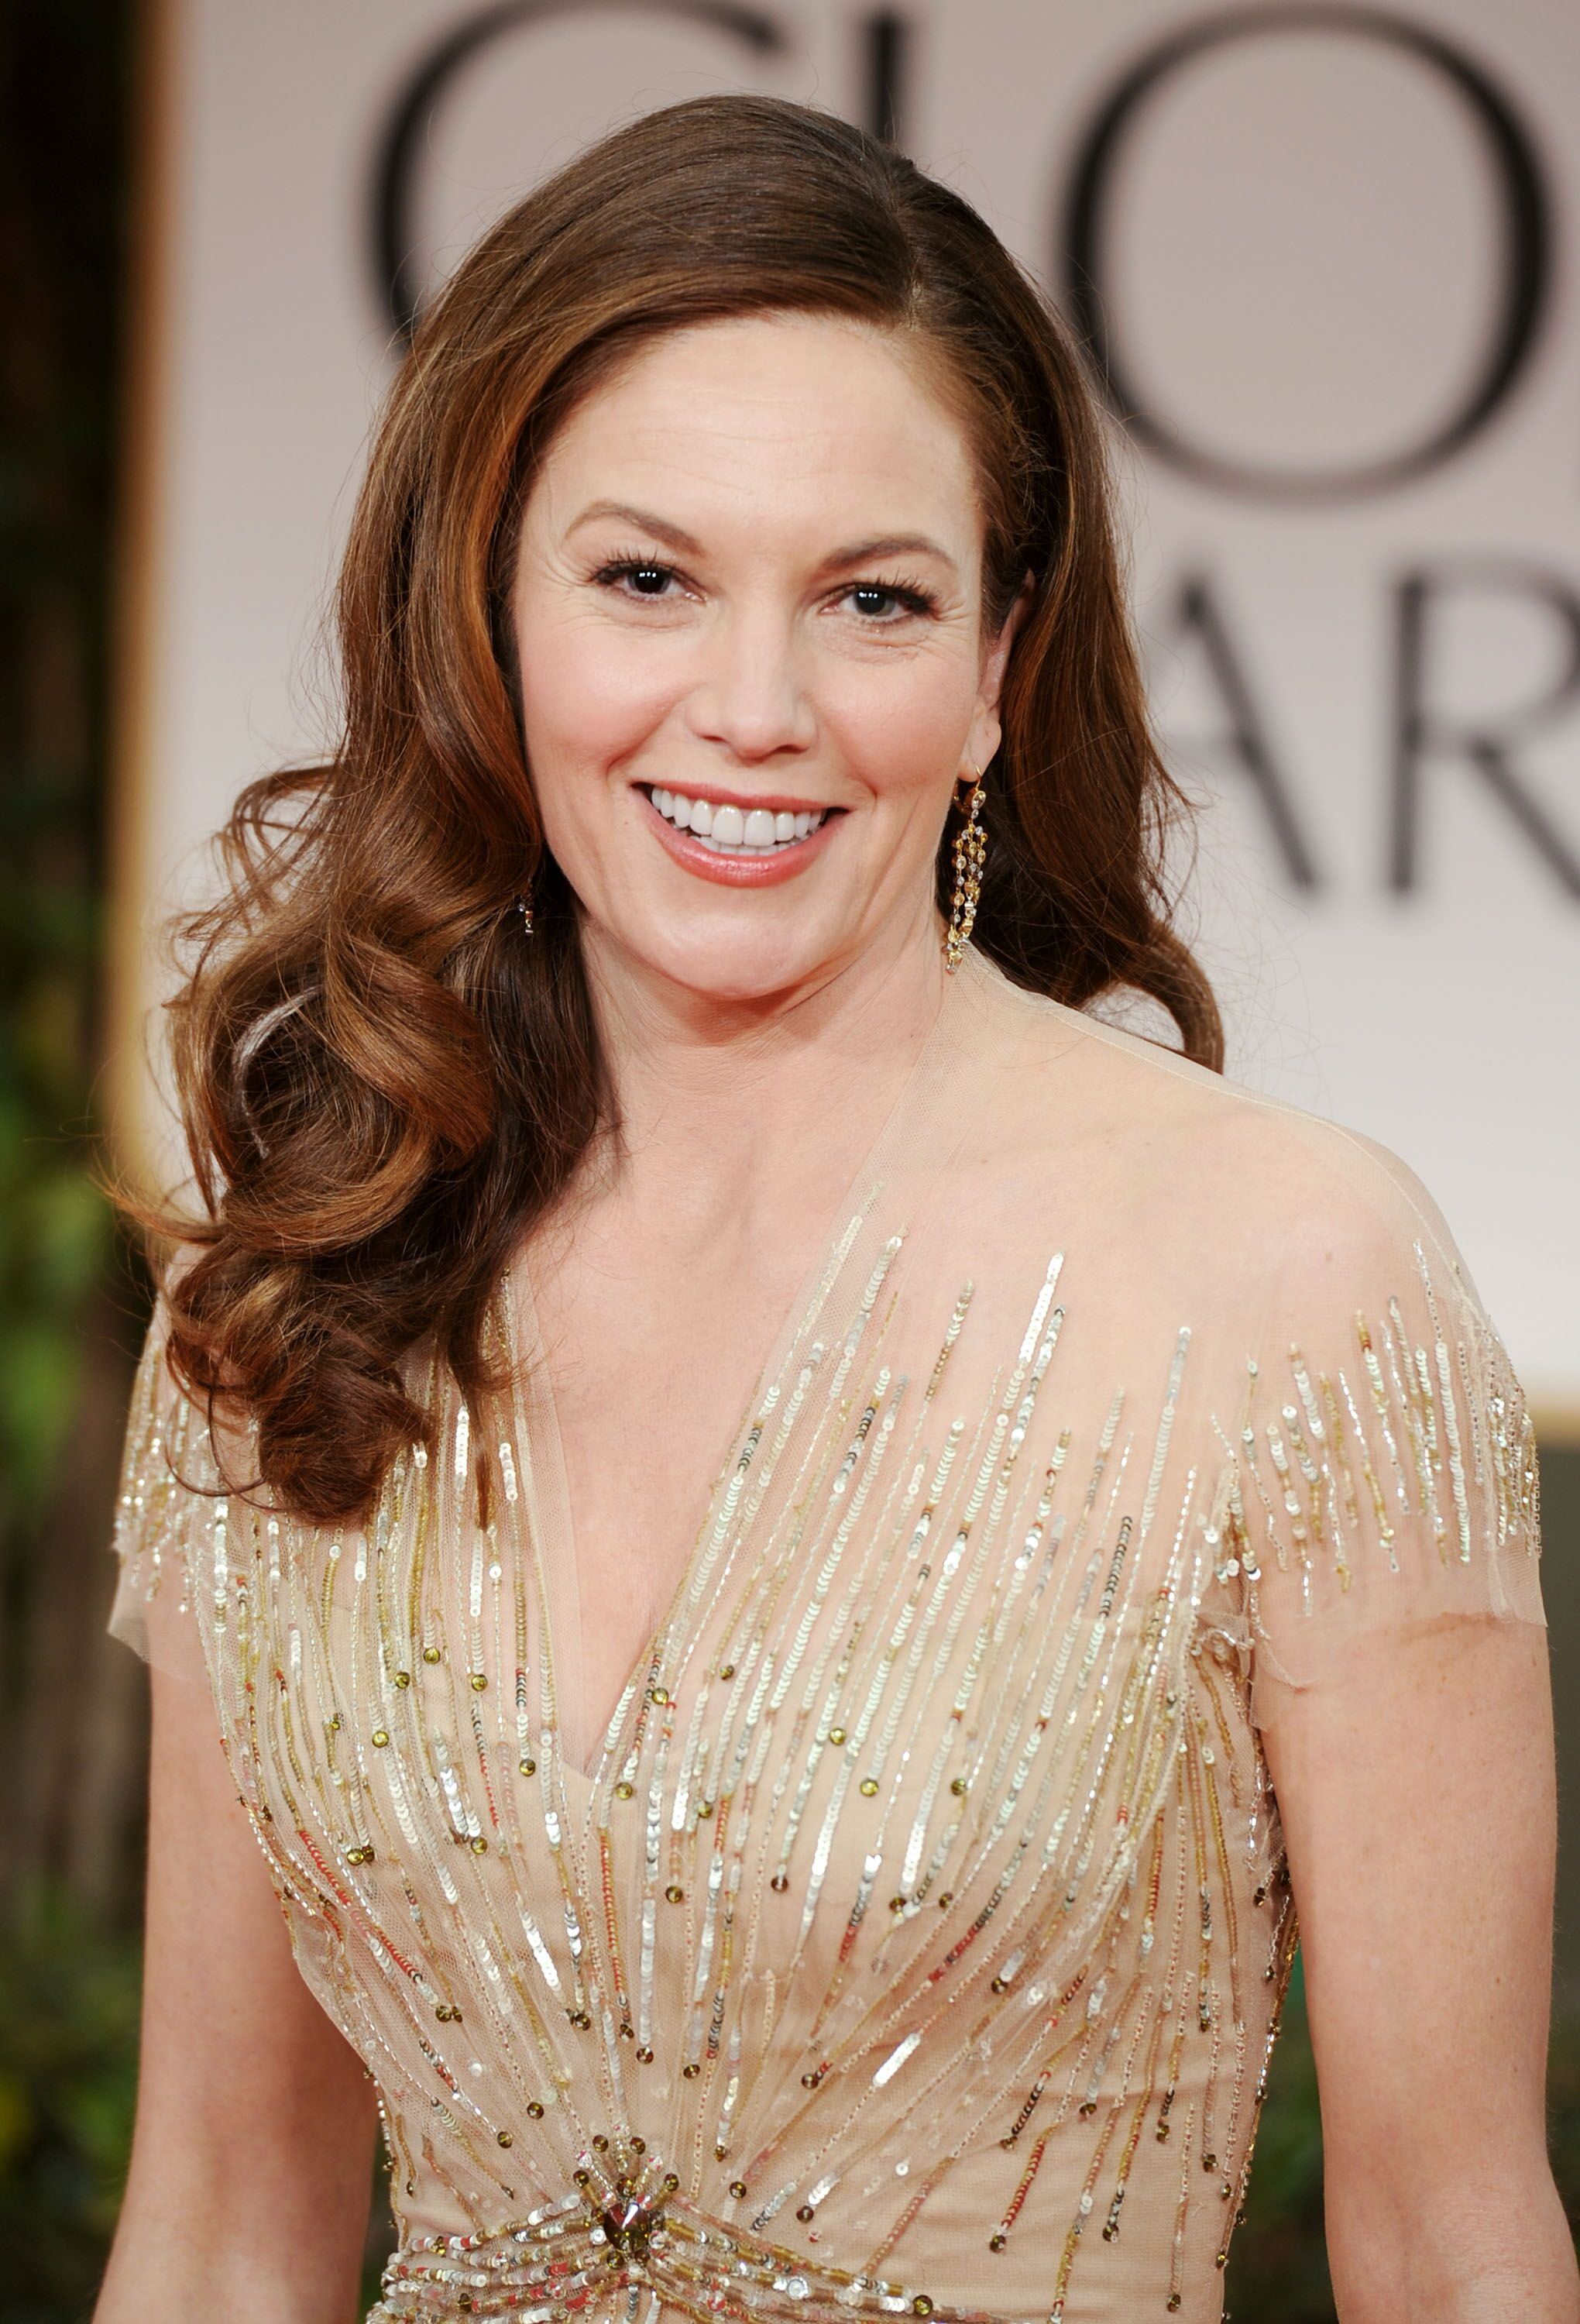 Diane Lane at the 69th Annual Golden Globe Awards on January 15, 2012, in Beverly Hills, California | Photo: Jason Merritt/Getty Images